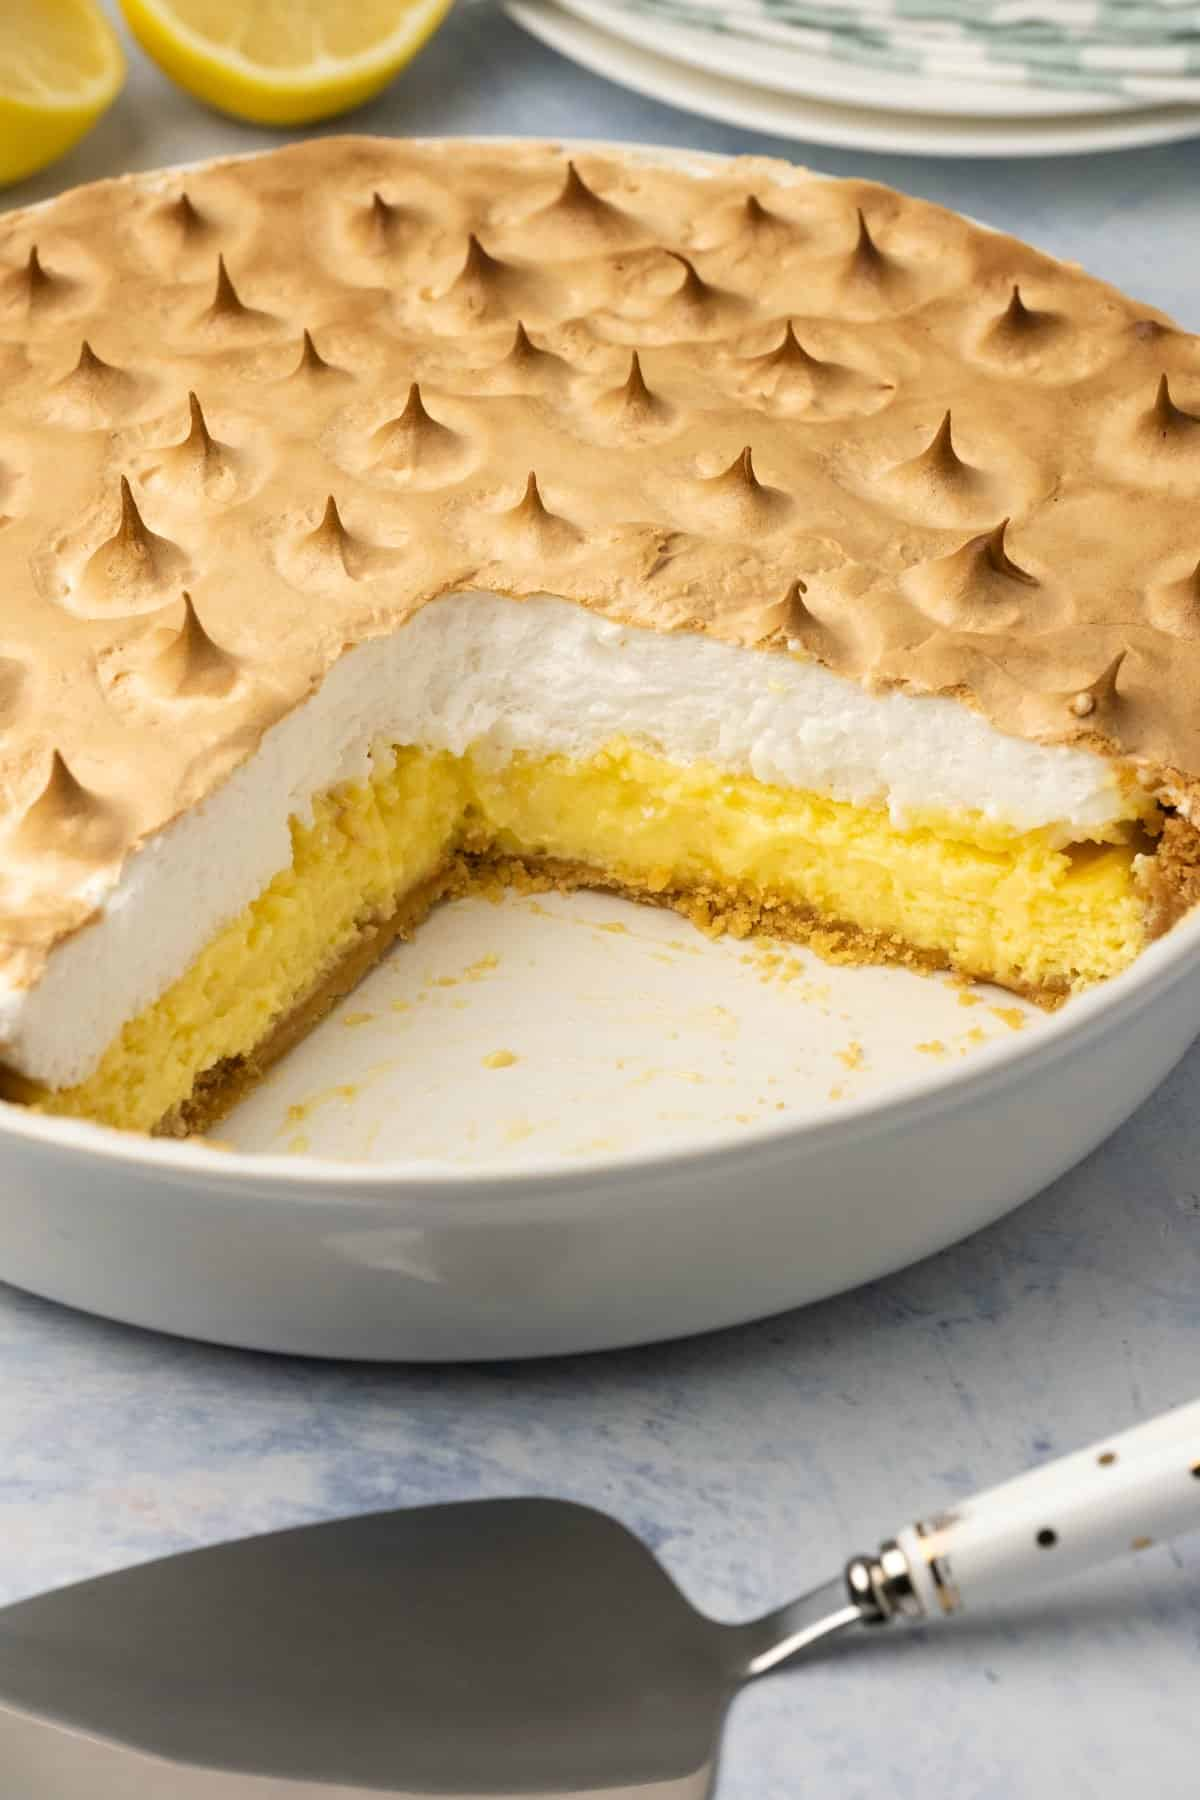 Lemon meringue pie in a white pie dish with a couple of slices removed.